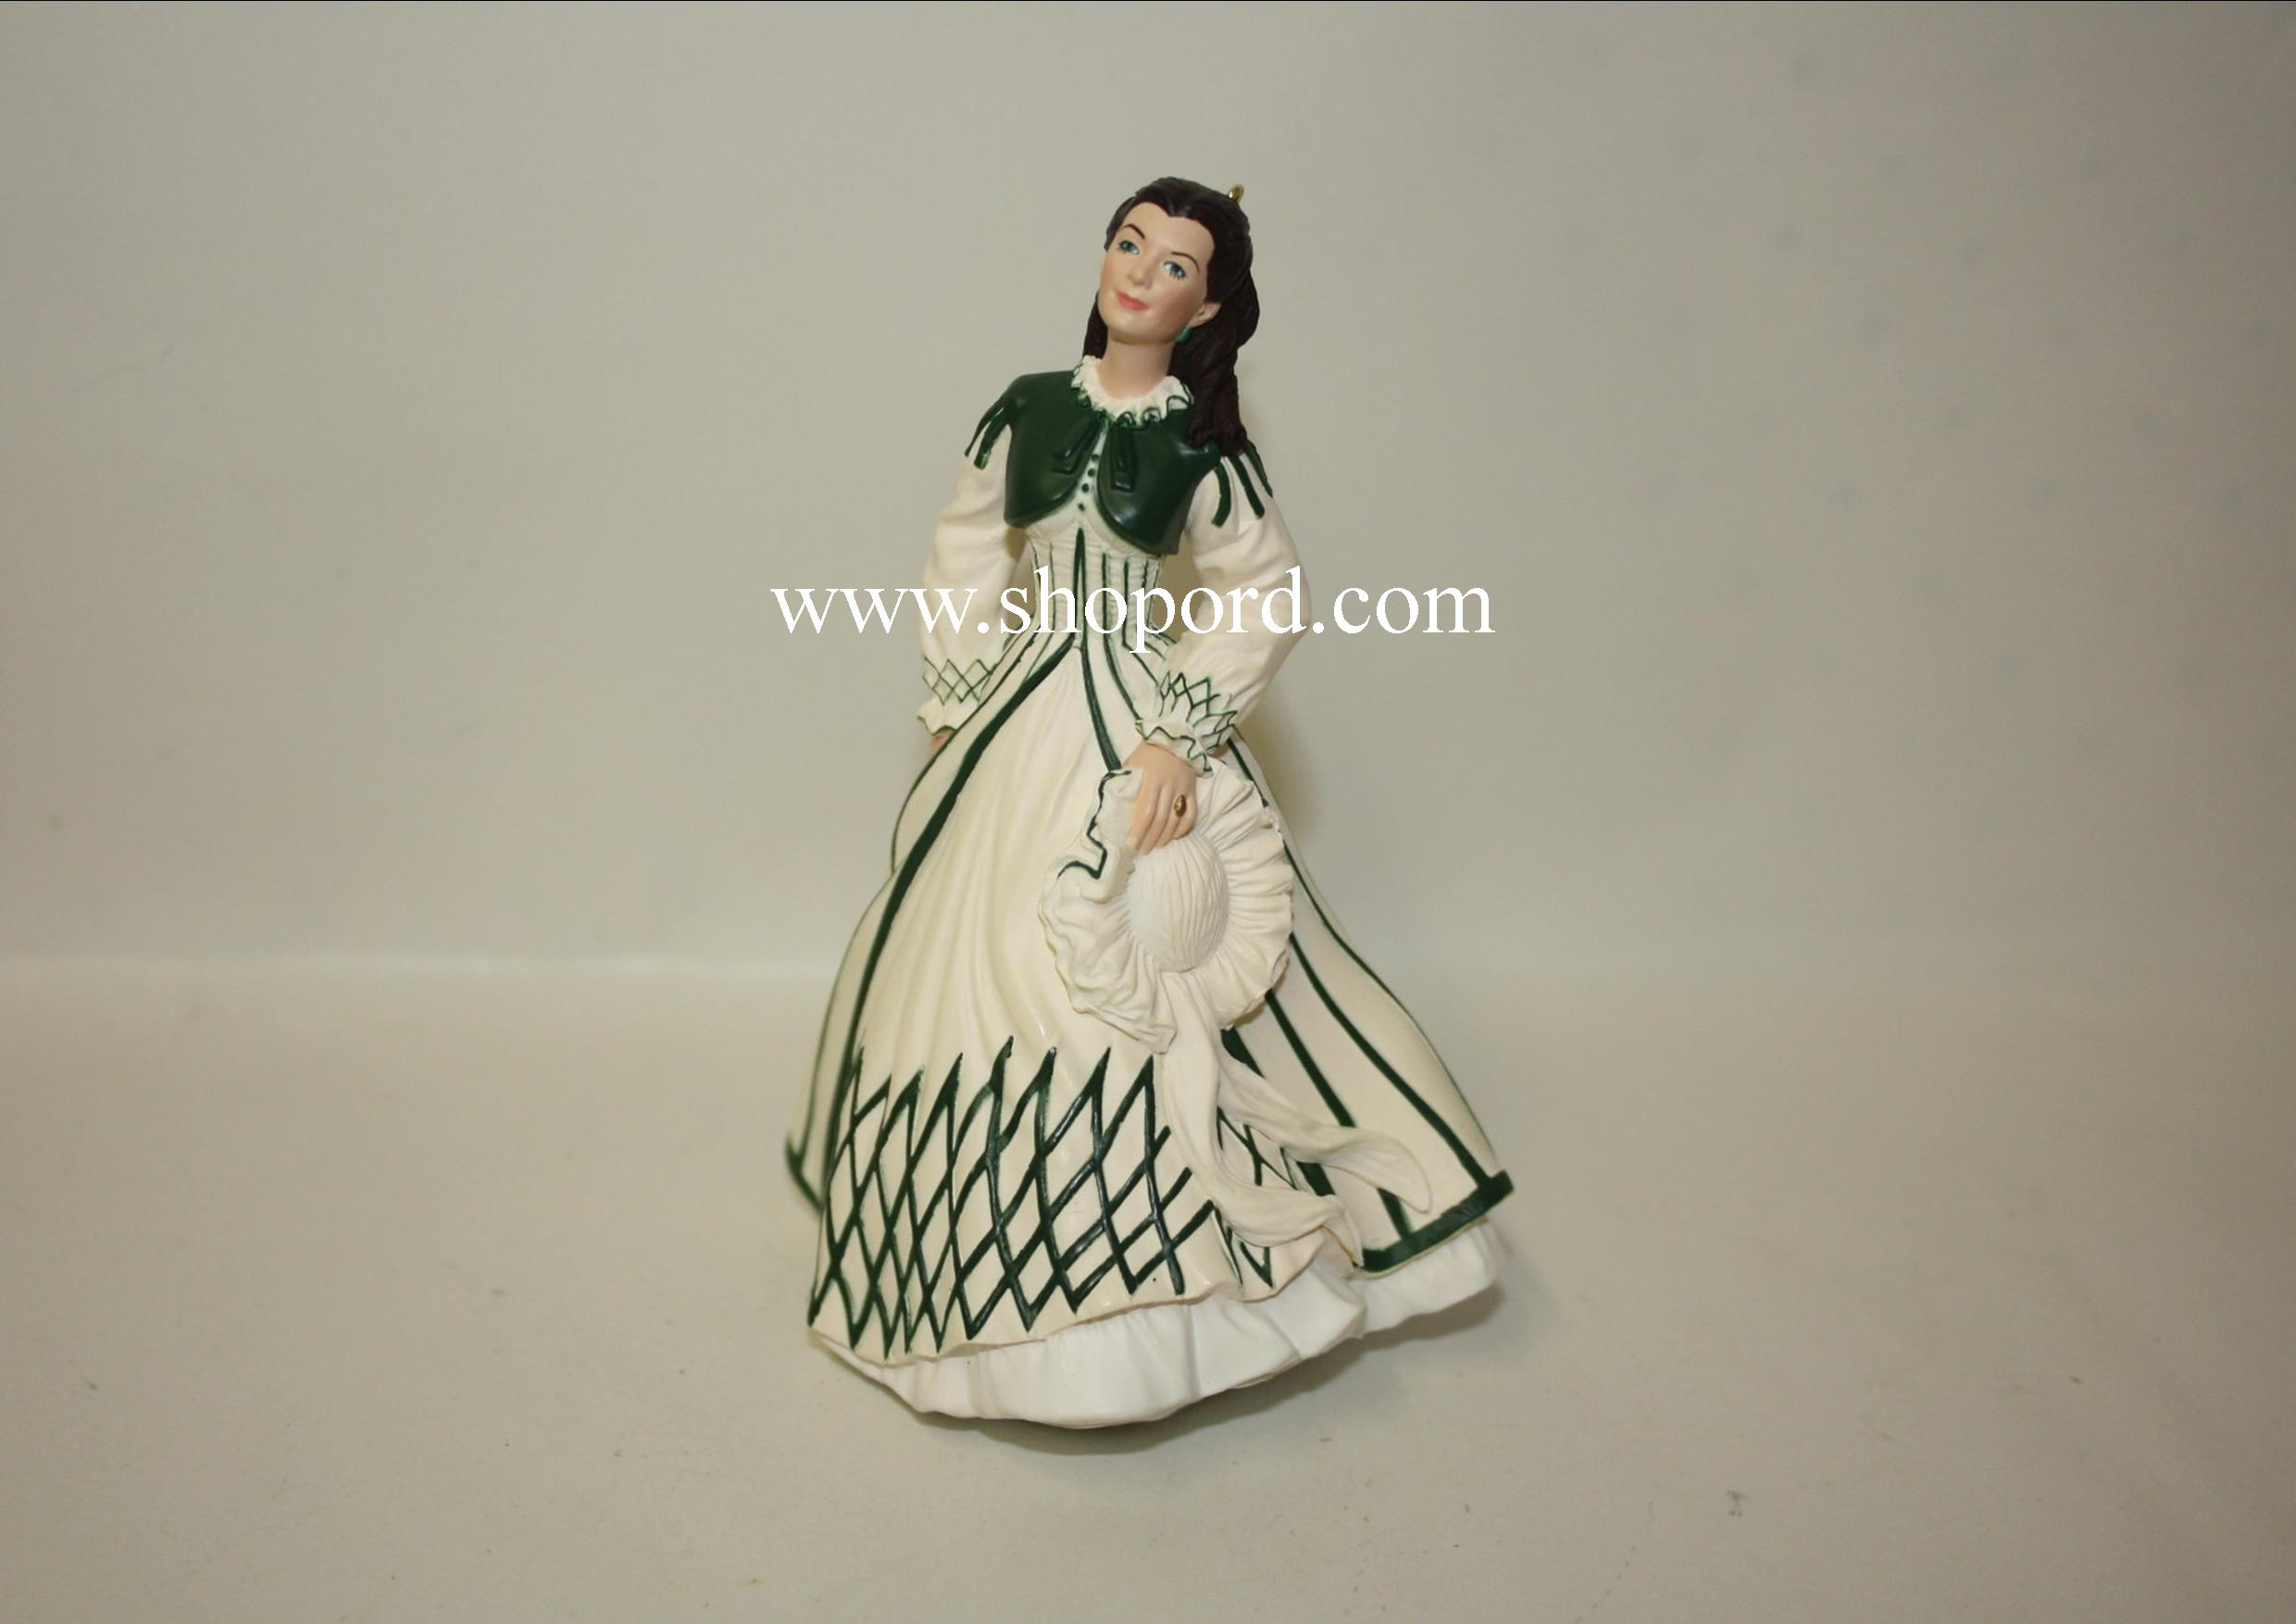 Hallmark 1999 Scarlett O Hara Gone With The Wind Ornament 3rd In The Series QX6397